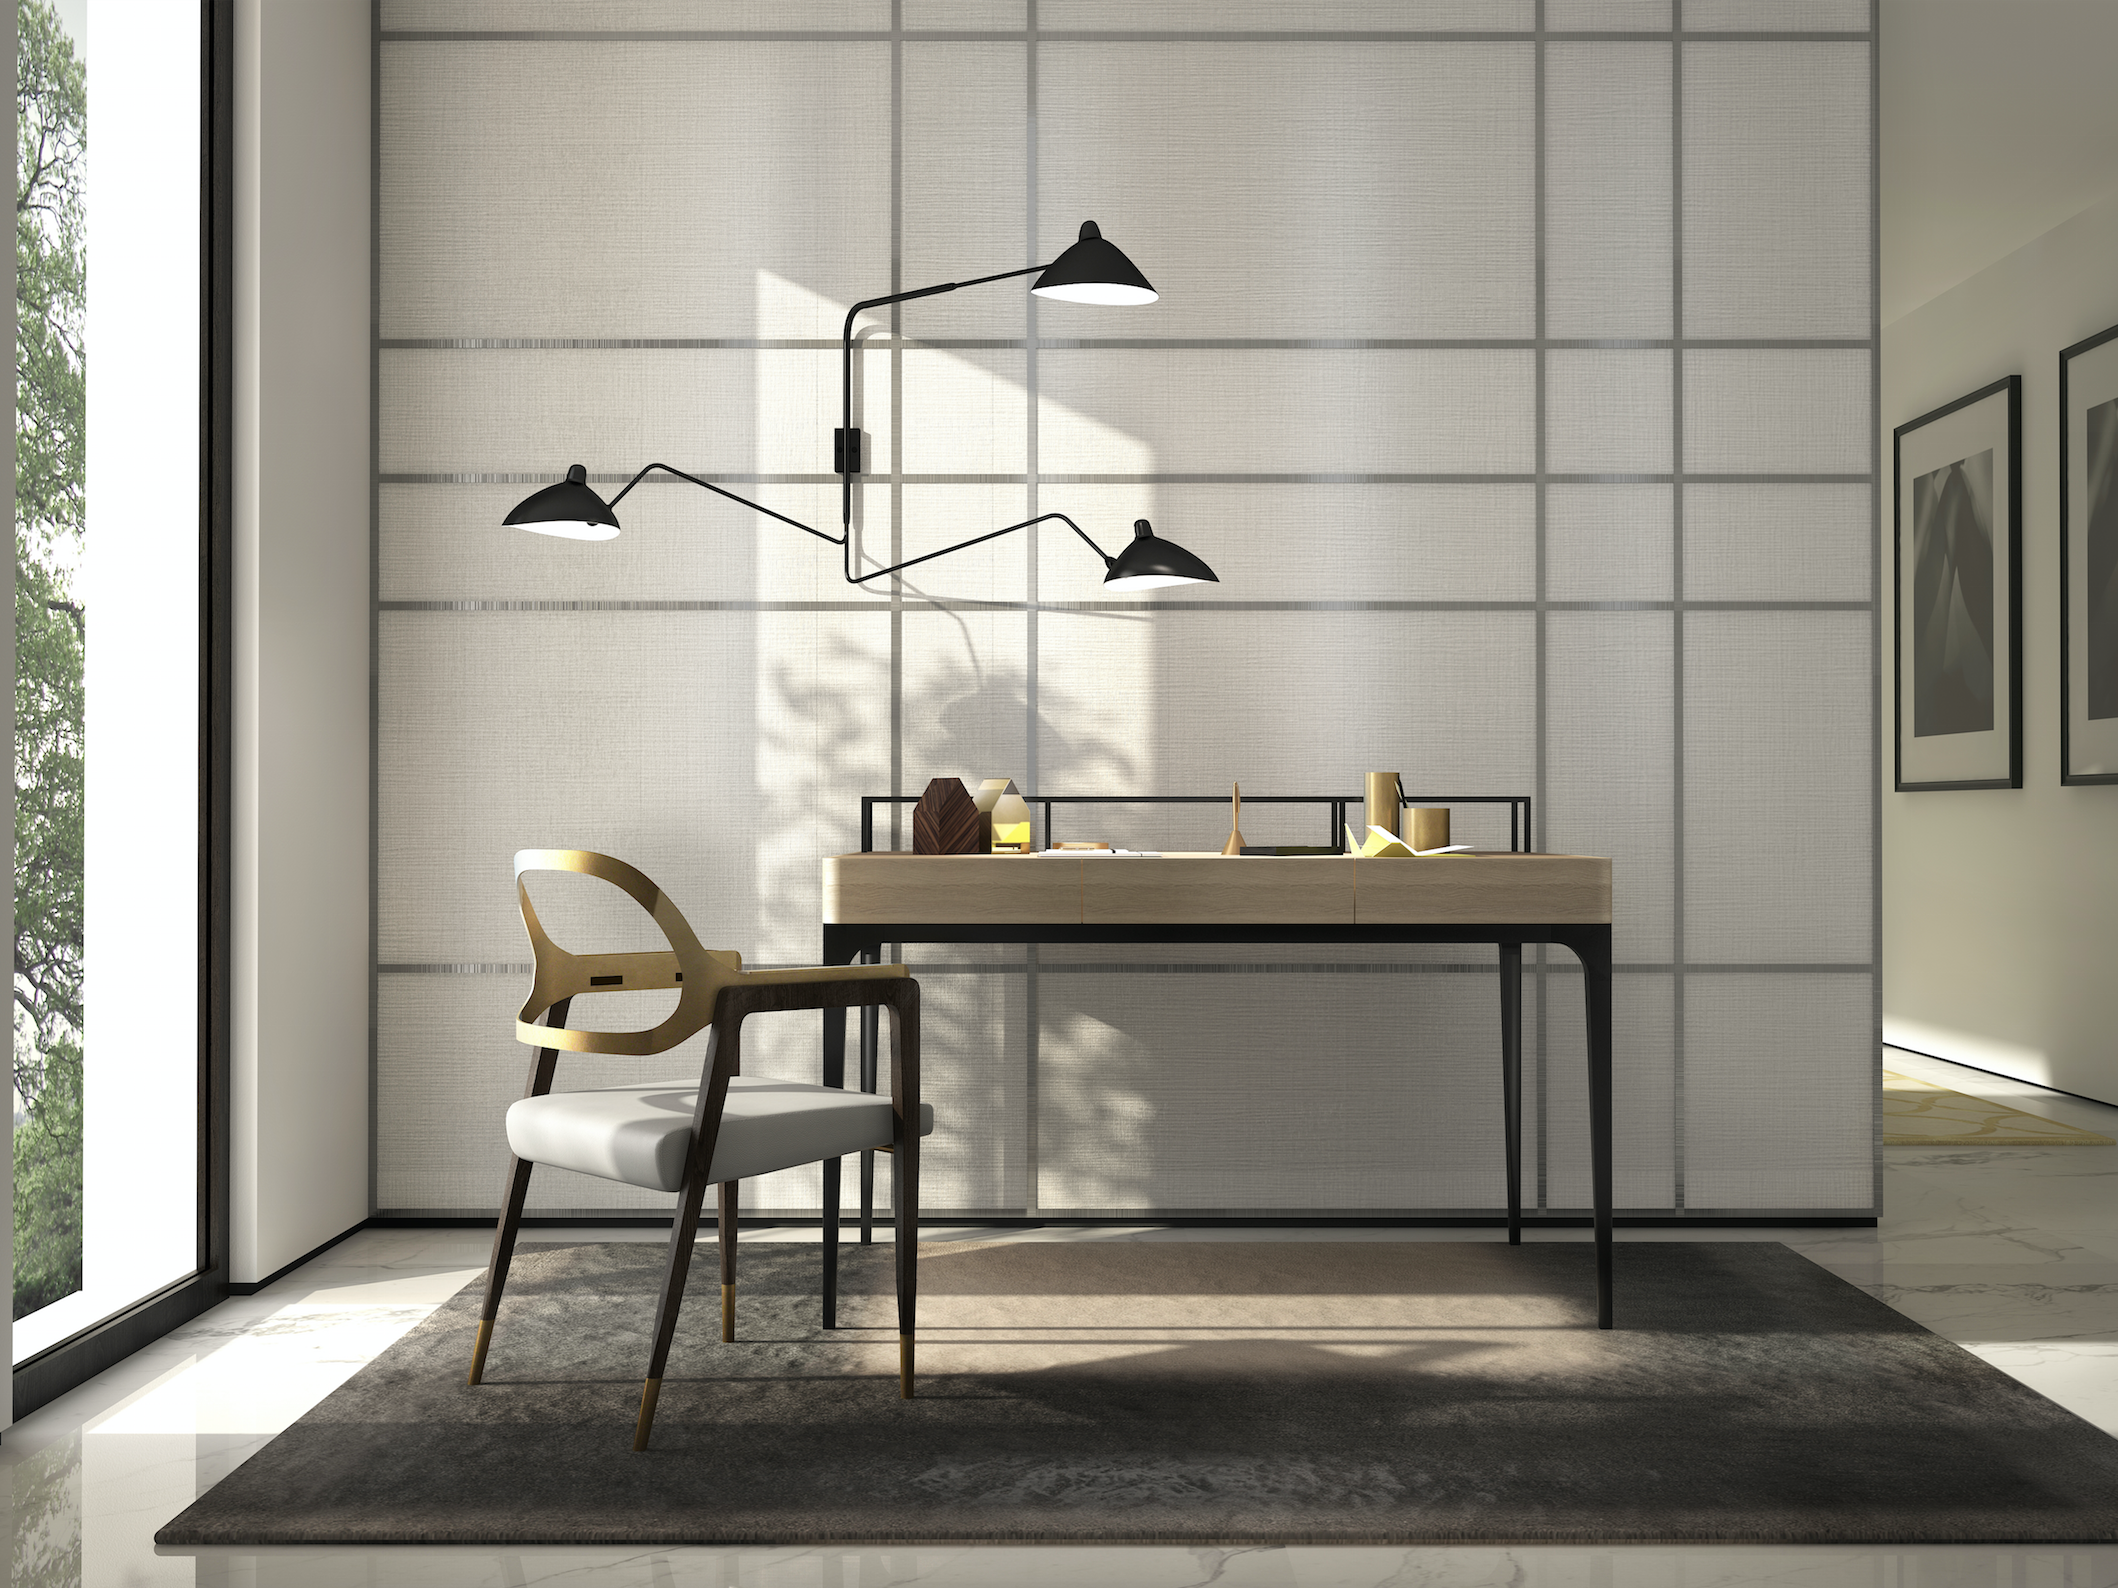 Plafoniera Ufficio Design : Home collection is designed by hangar design group for rossato